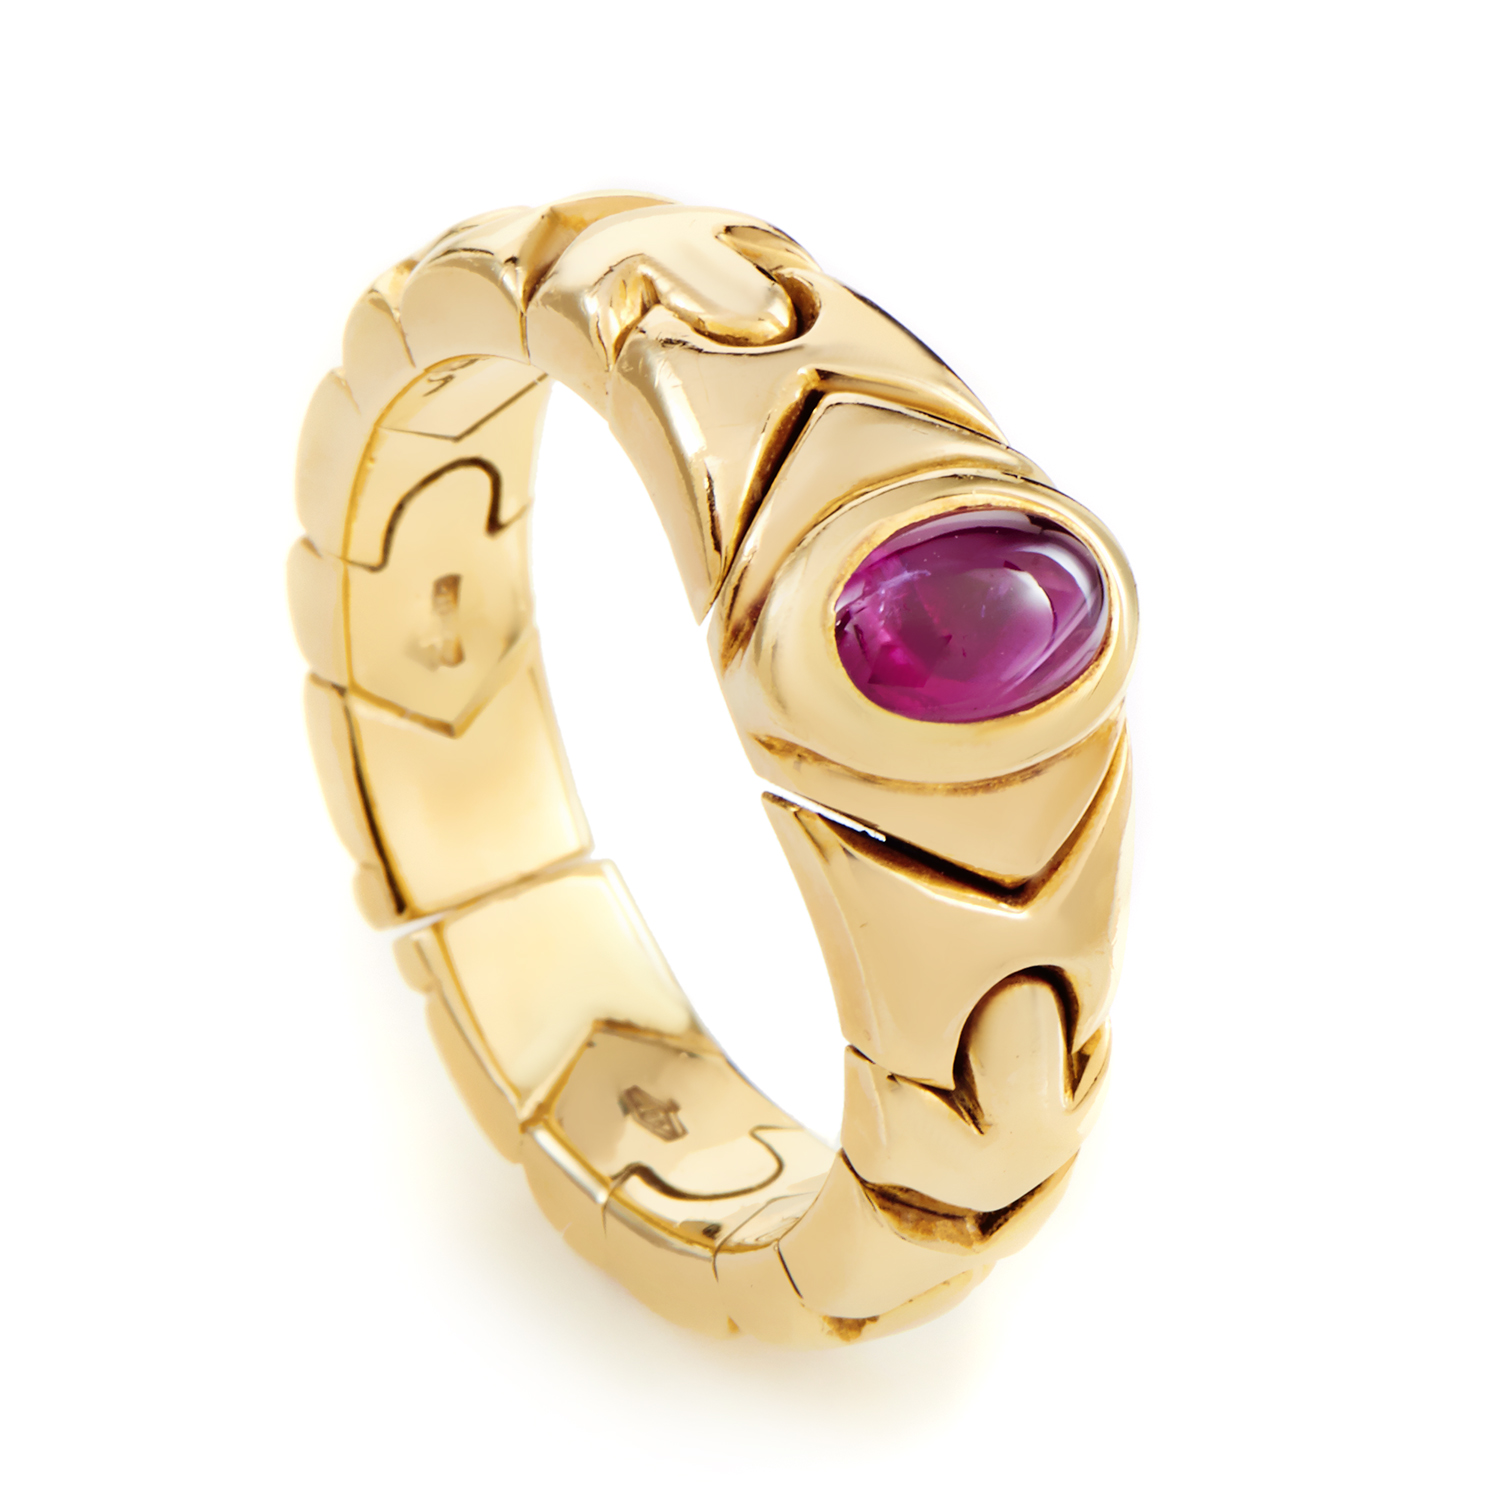 Bvlgari Women's 18K Yellow Gold Ruby Cabochon Band Ring